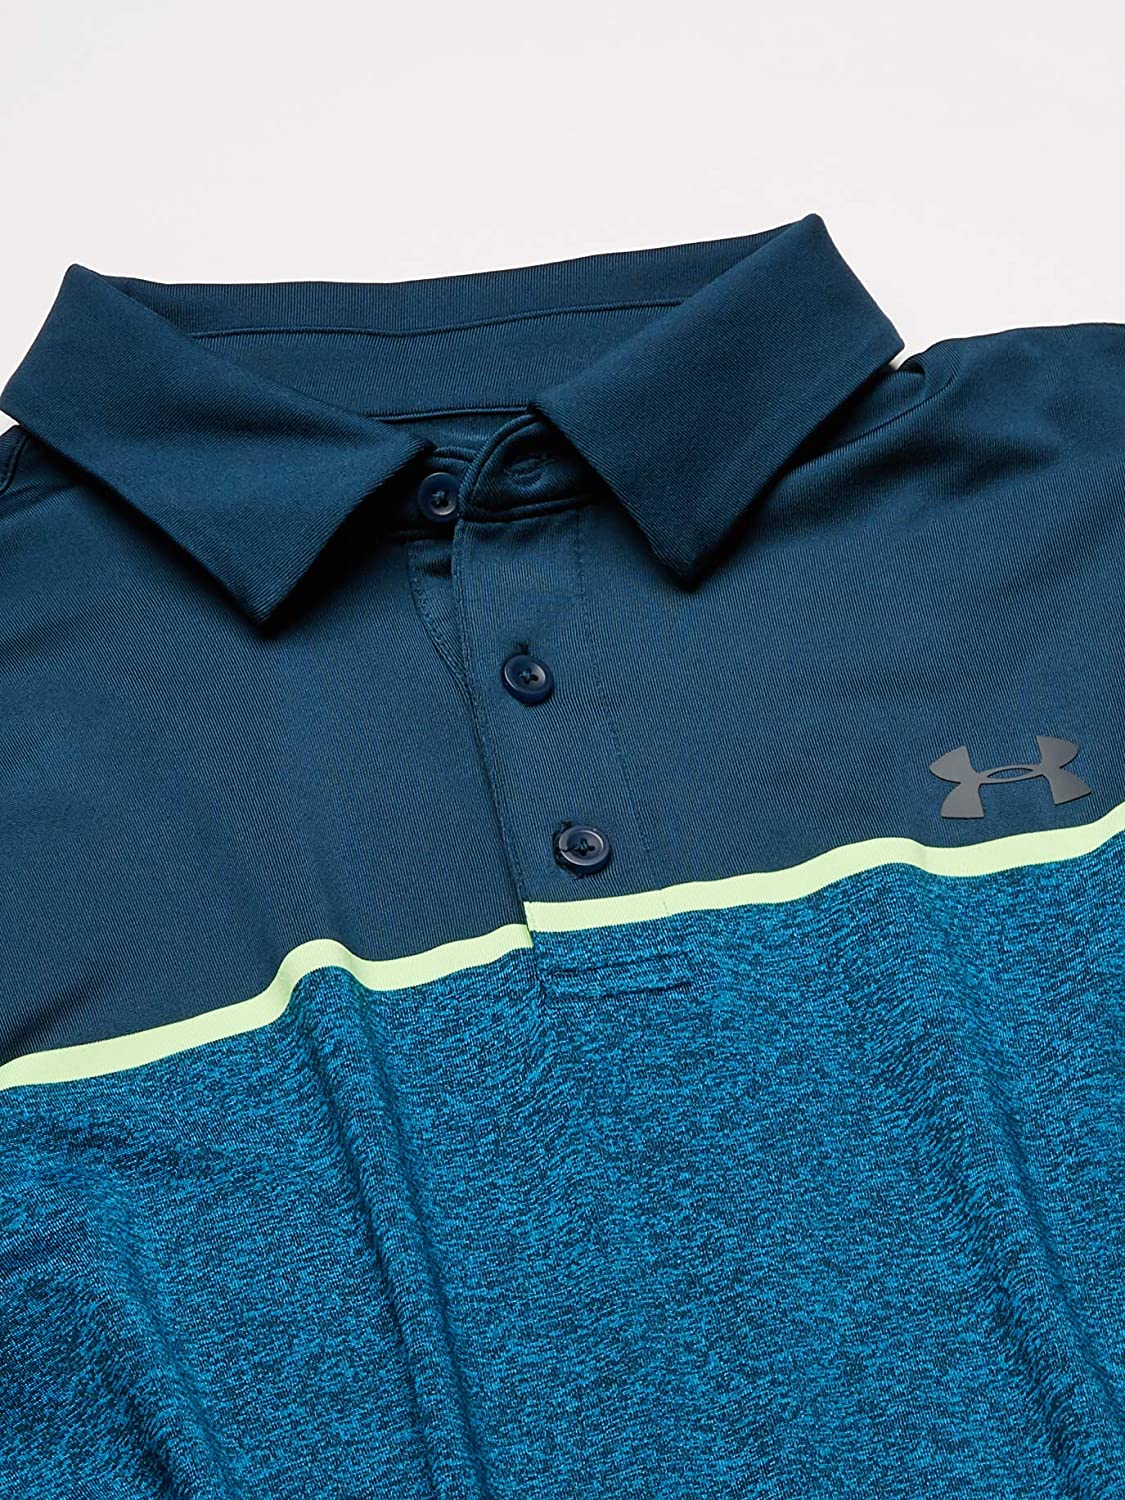 Blue XL Short Sleeve Polo Shirt with Sun Protection Under Armour Mens Playoff 2.0 T